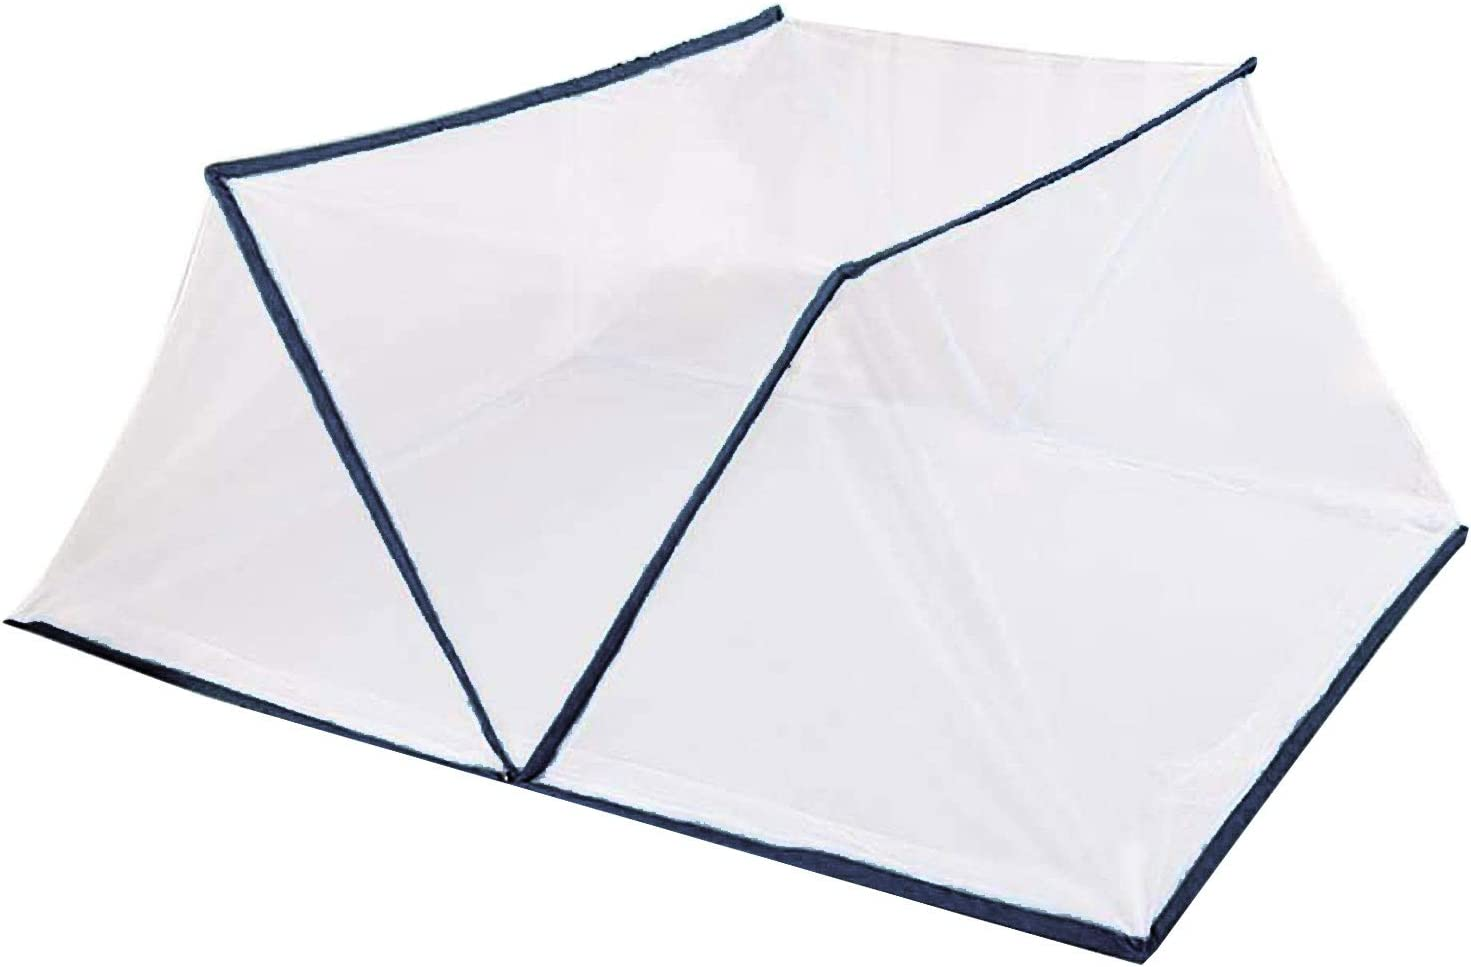 Dorm/Home Bed Mosquito Nets Folding Mosquito Net,Mosquito Net Portable 2 Side Openings for Babys Adults